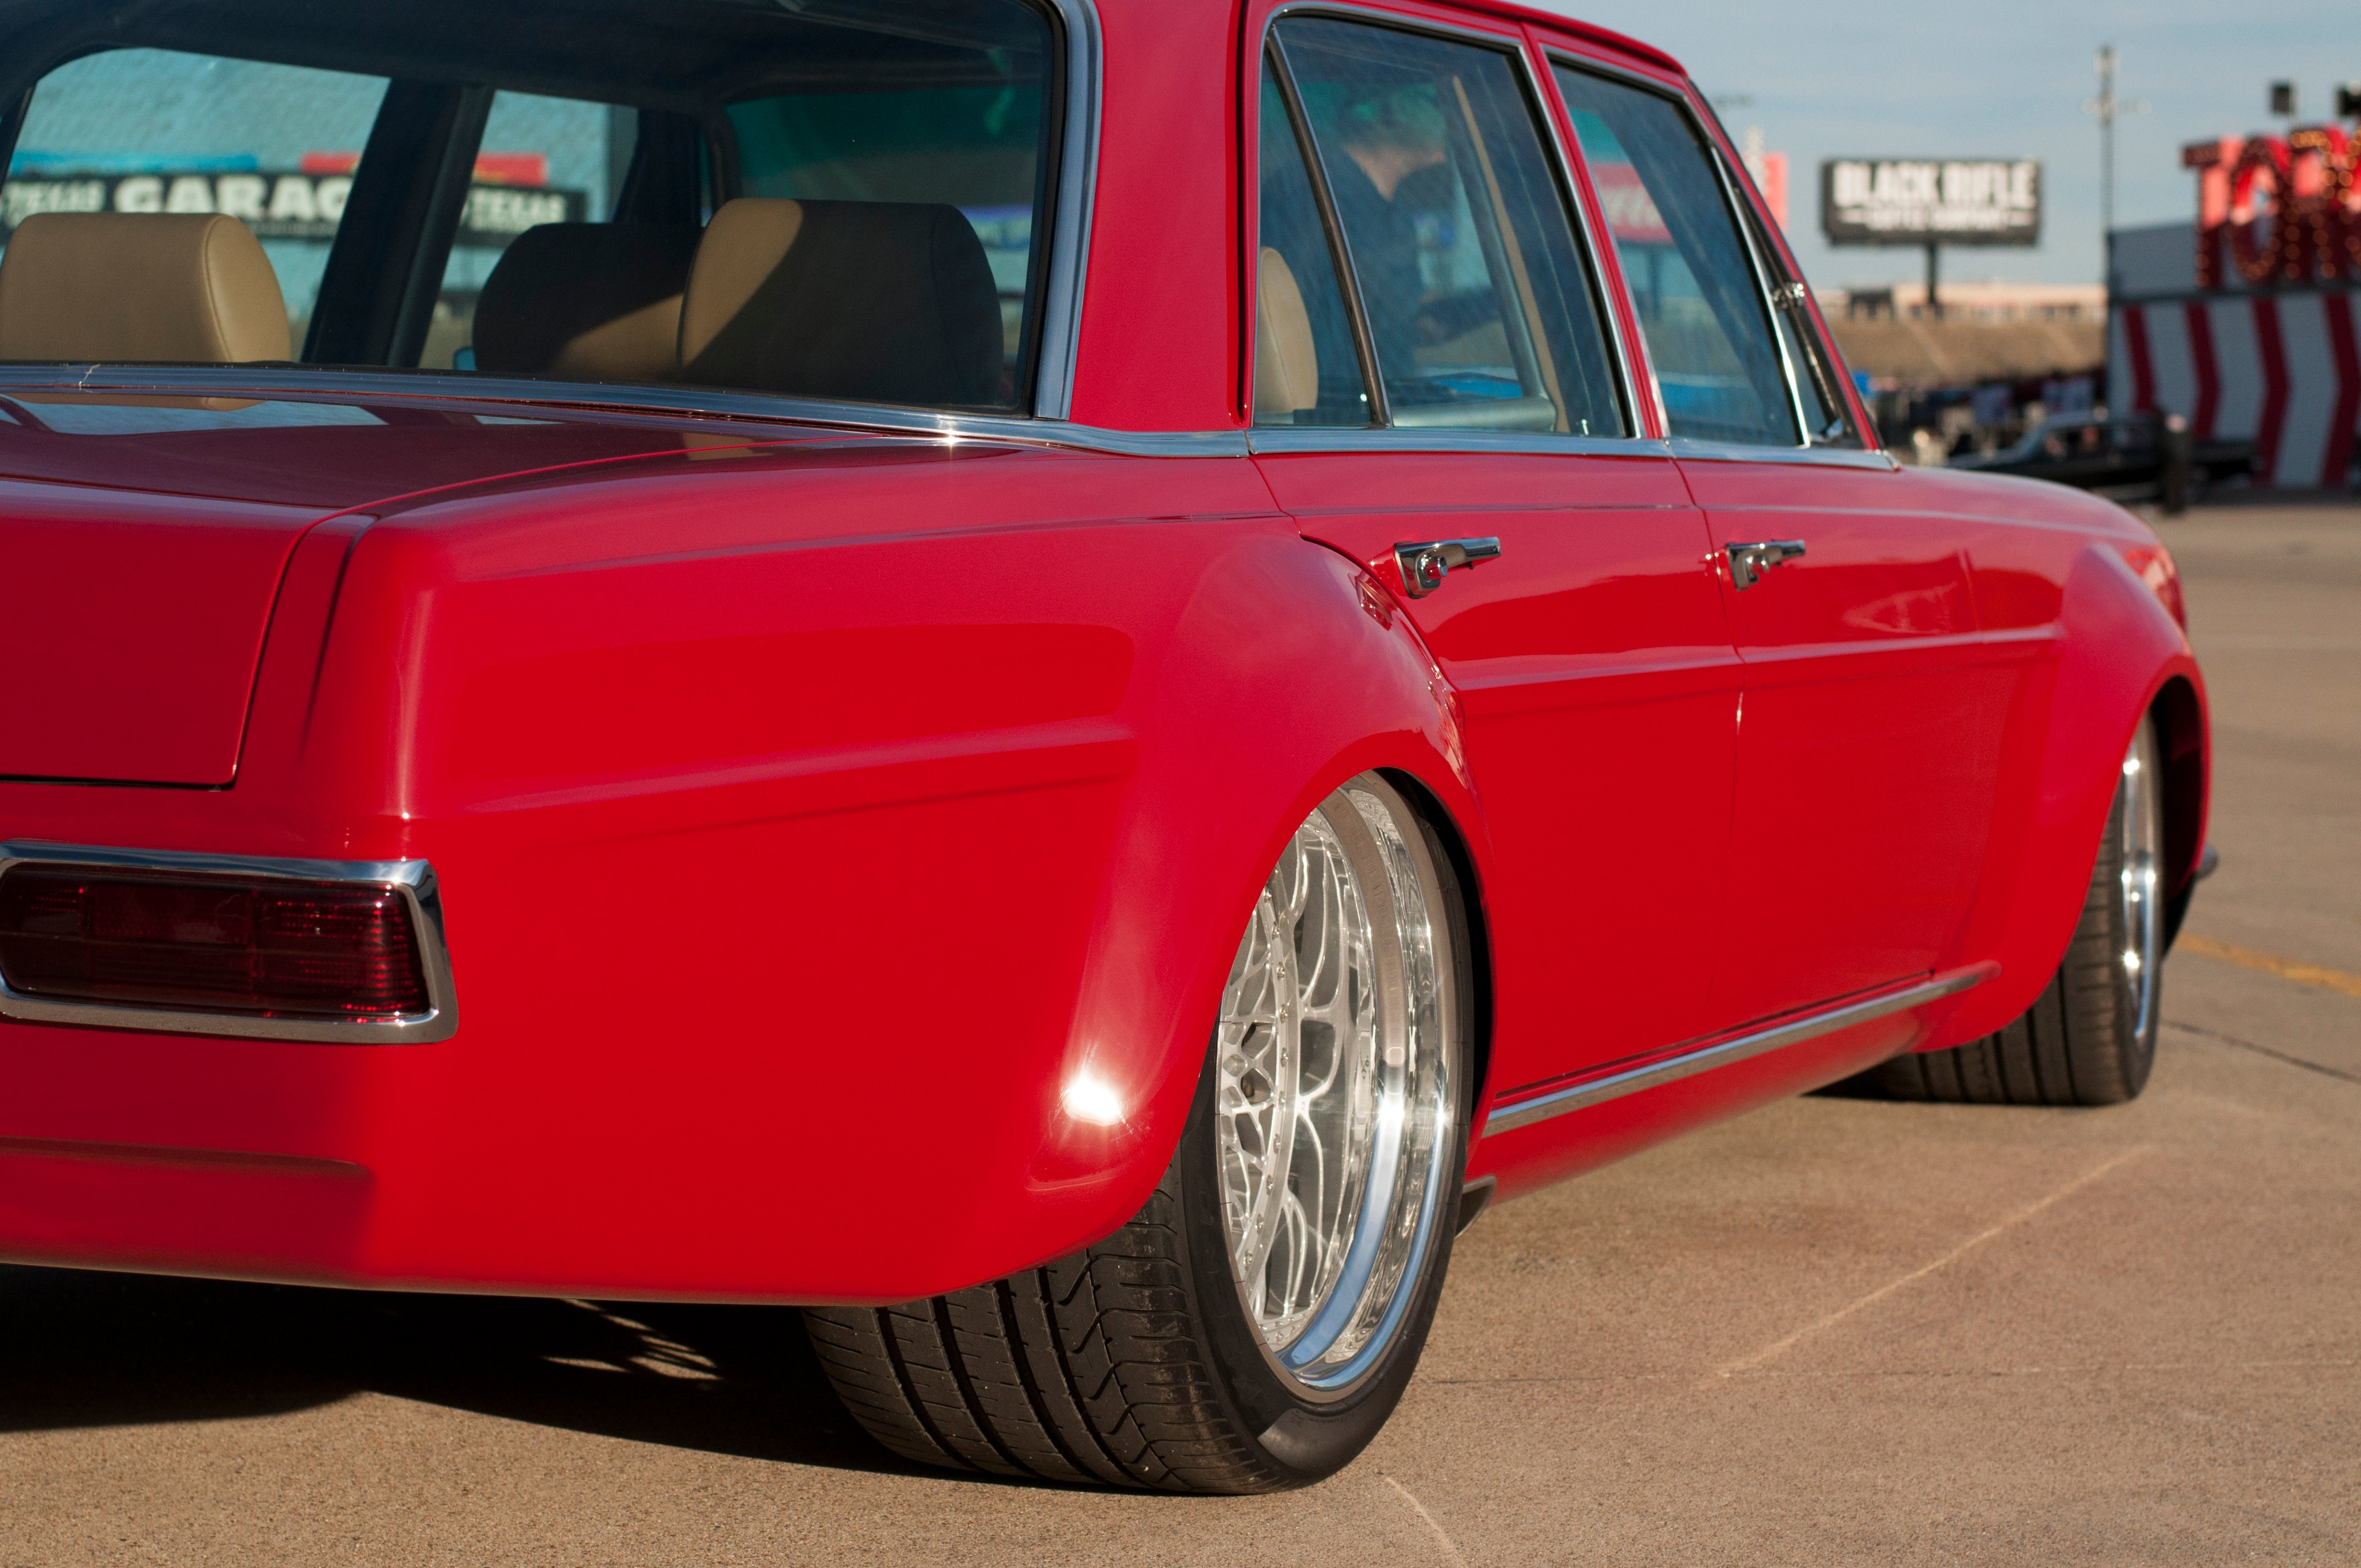 the red pig josh stahl s ls powered 1969 mercedes benz 280sel ls powered 1969 mercedes benz 280sel